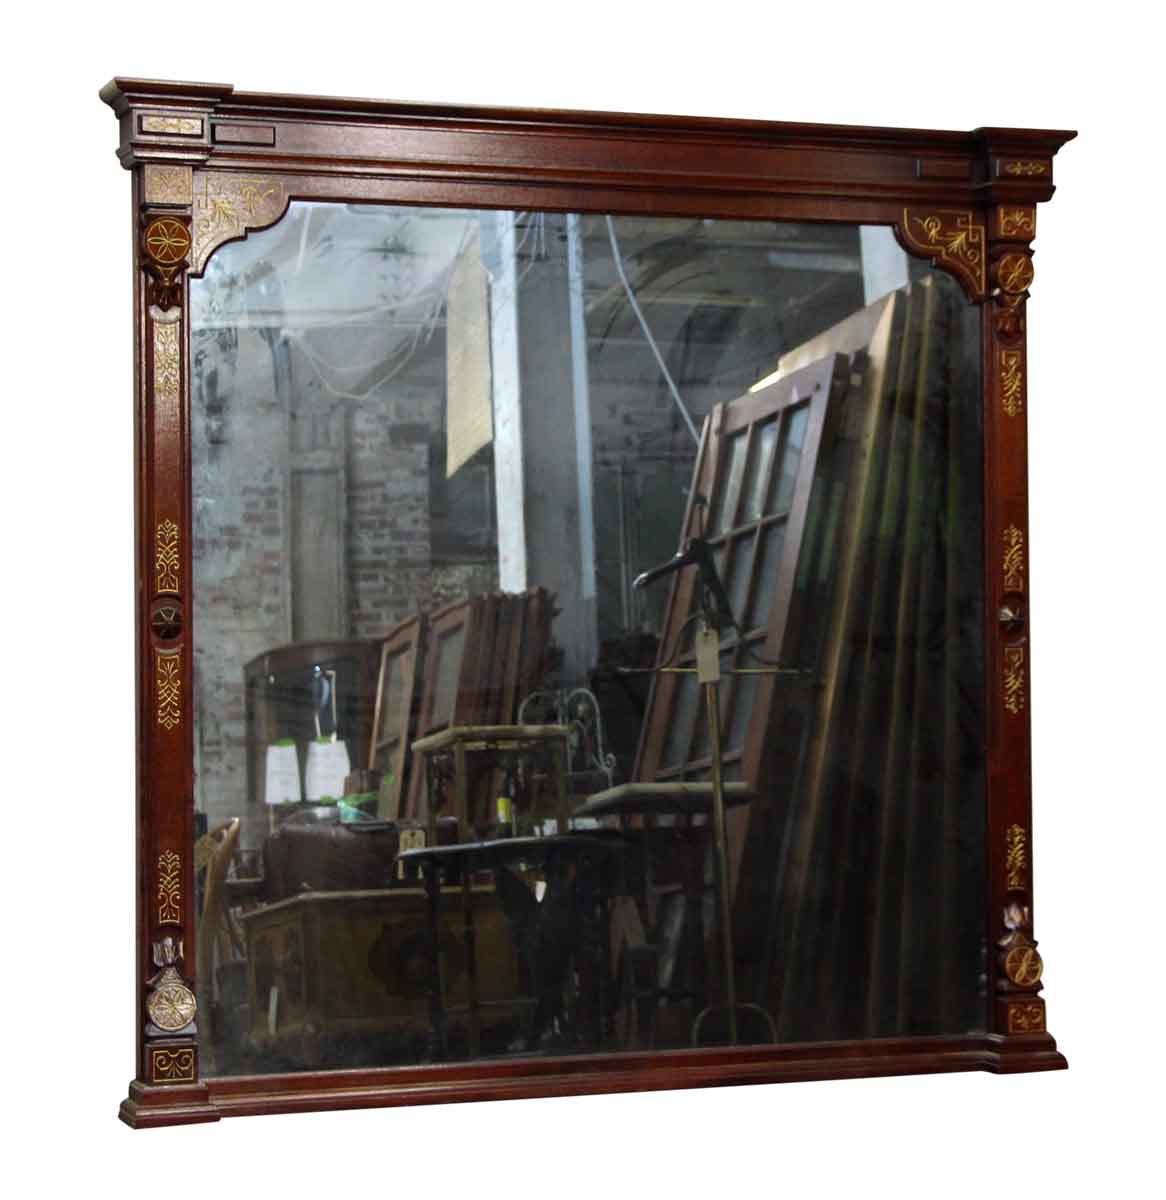 Large Wood Frame Mirror with Ornate Carvings | Olde Good ...